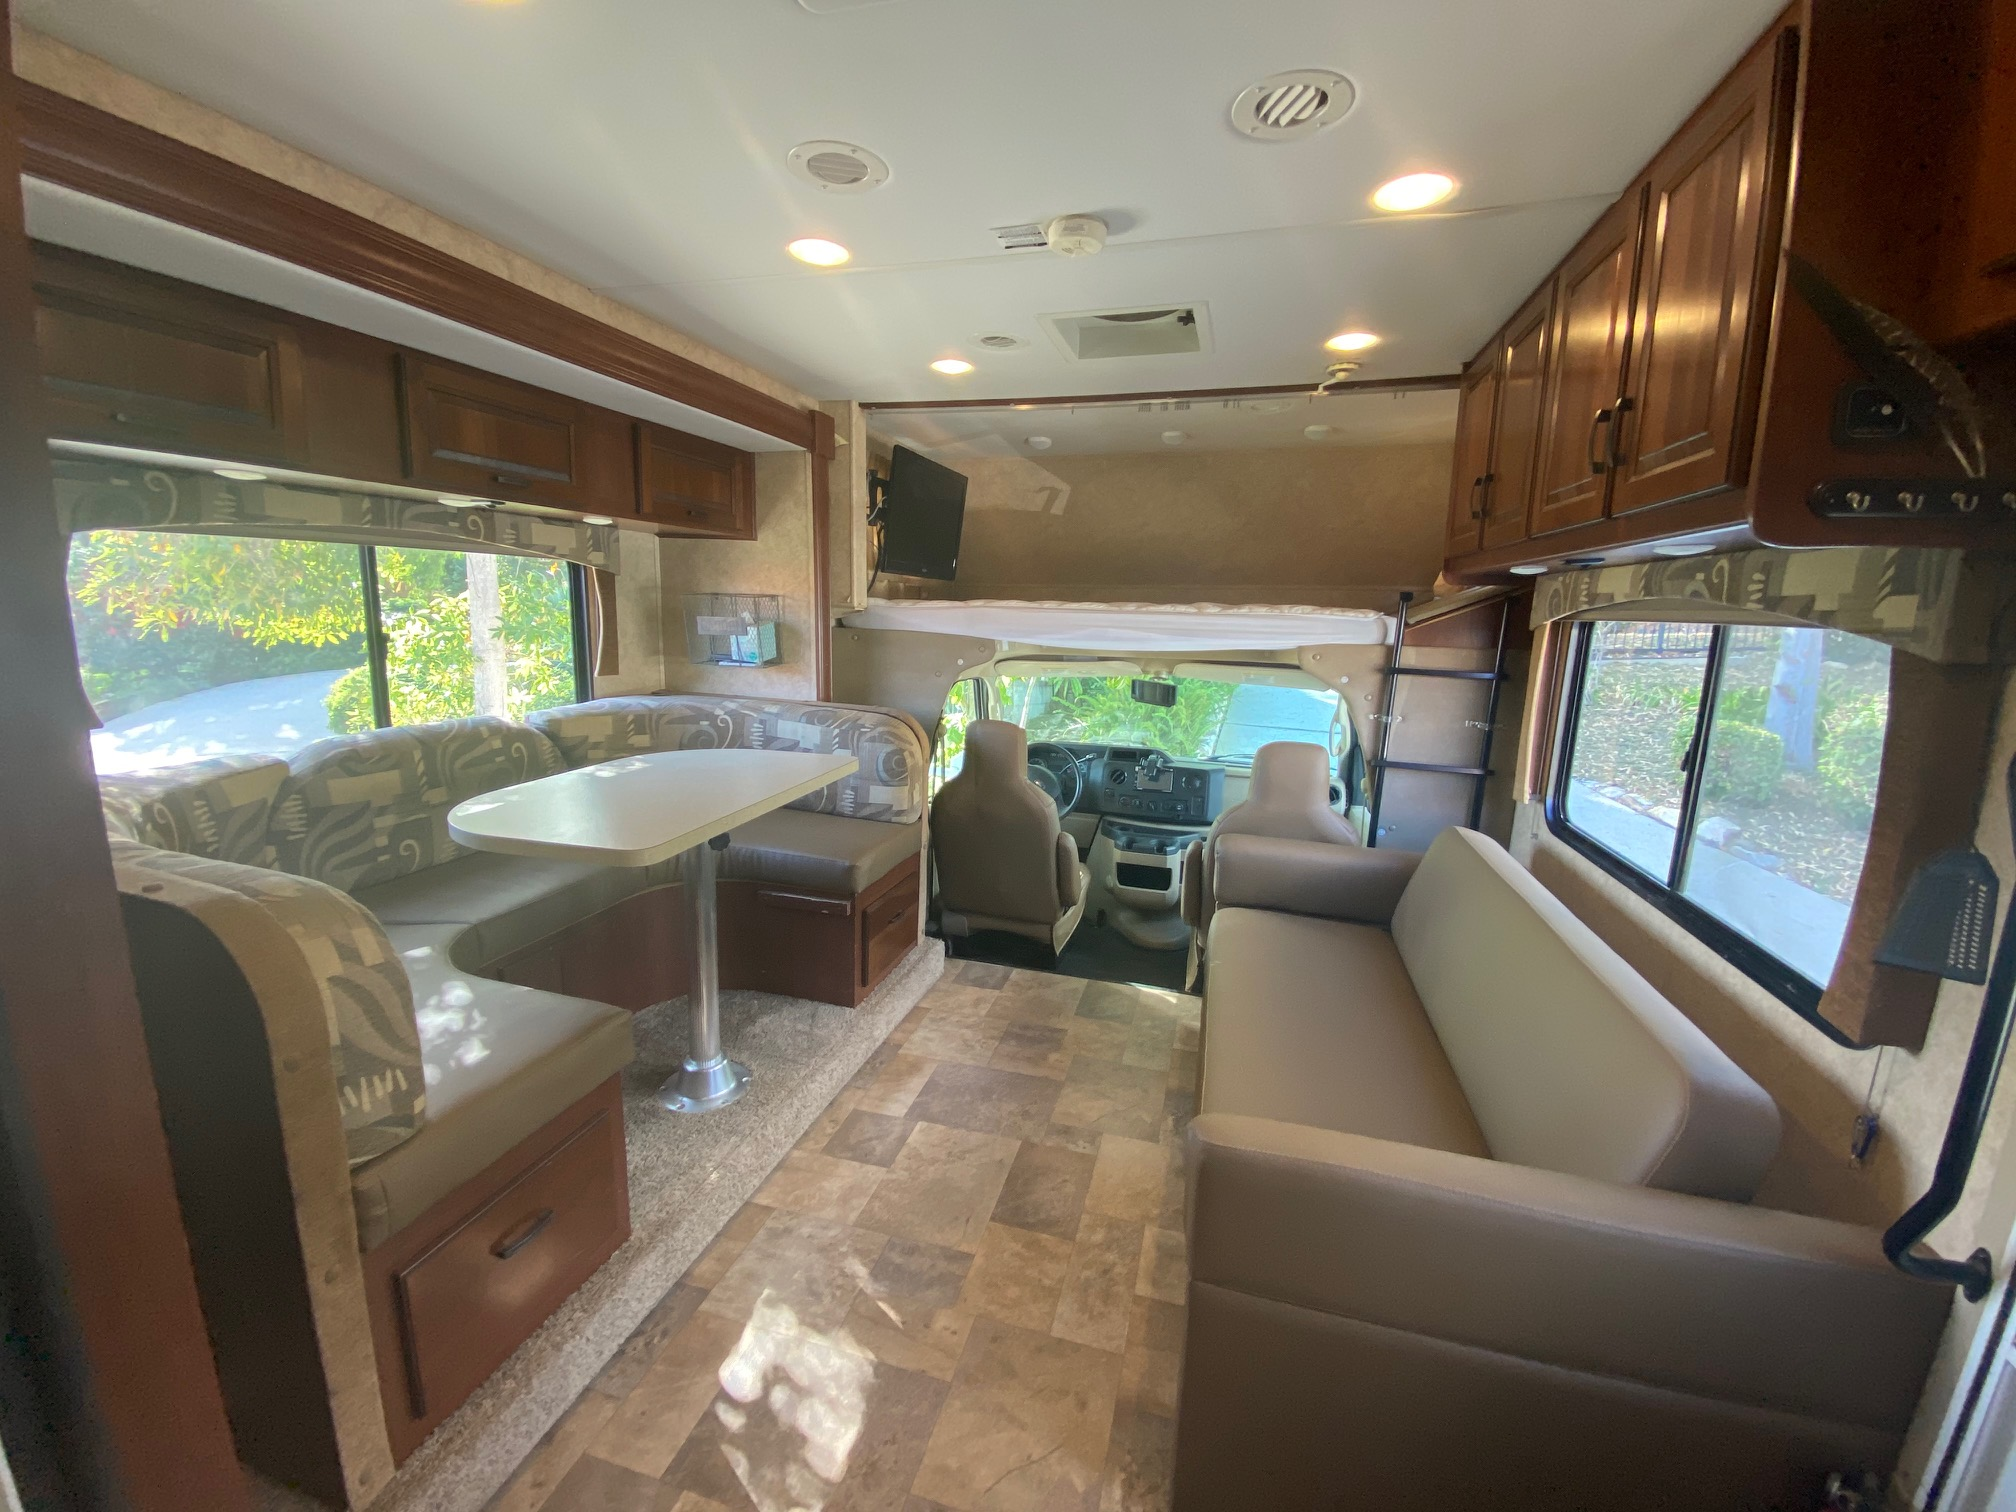 Couch and dinette with slide-out out. Forest River Forester 2691S 2013